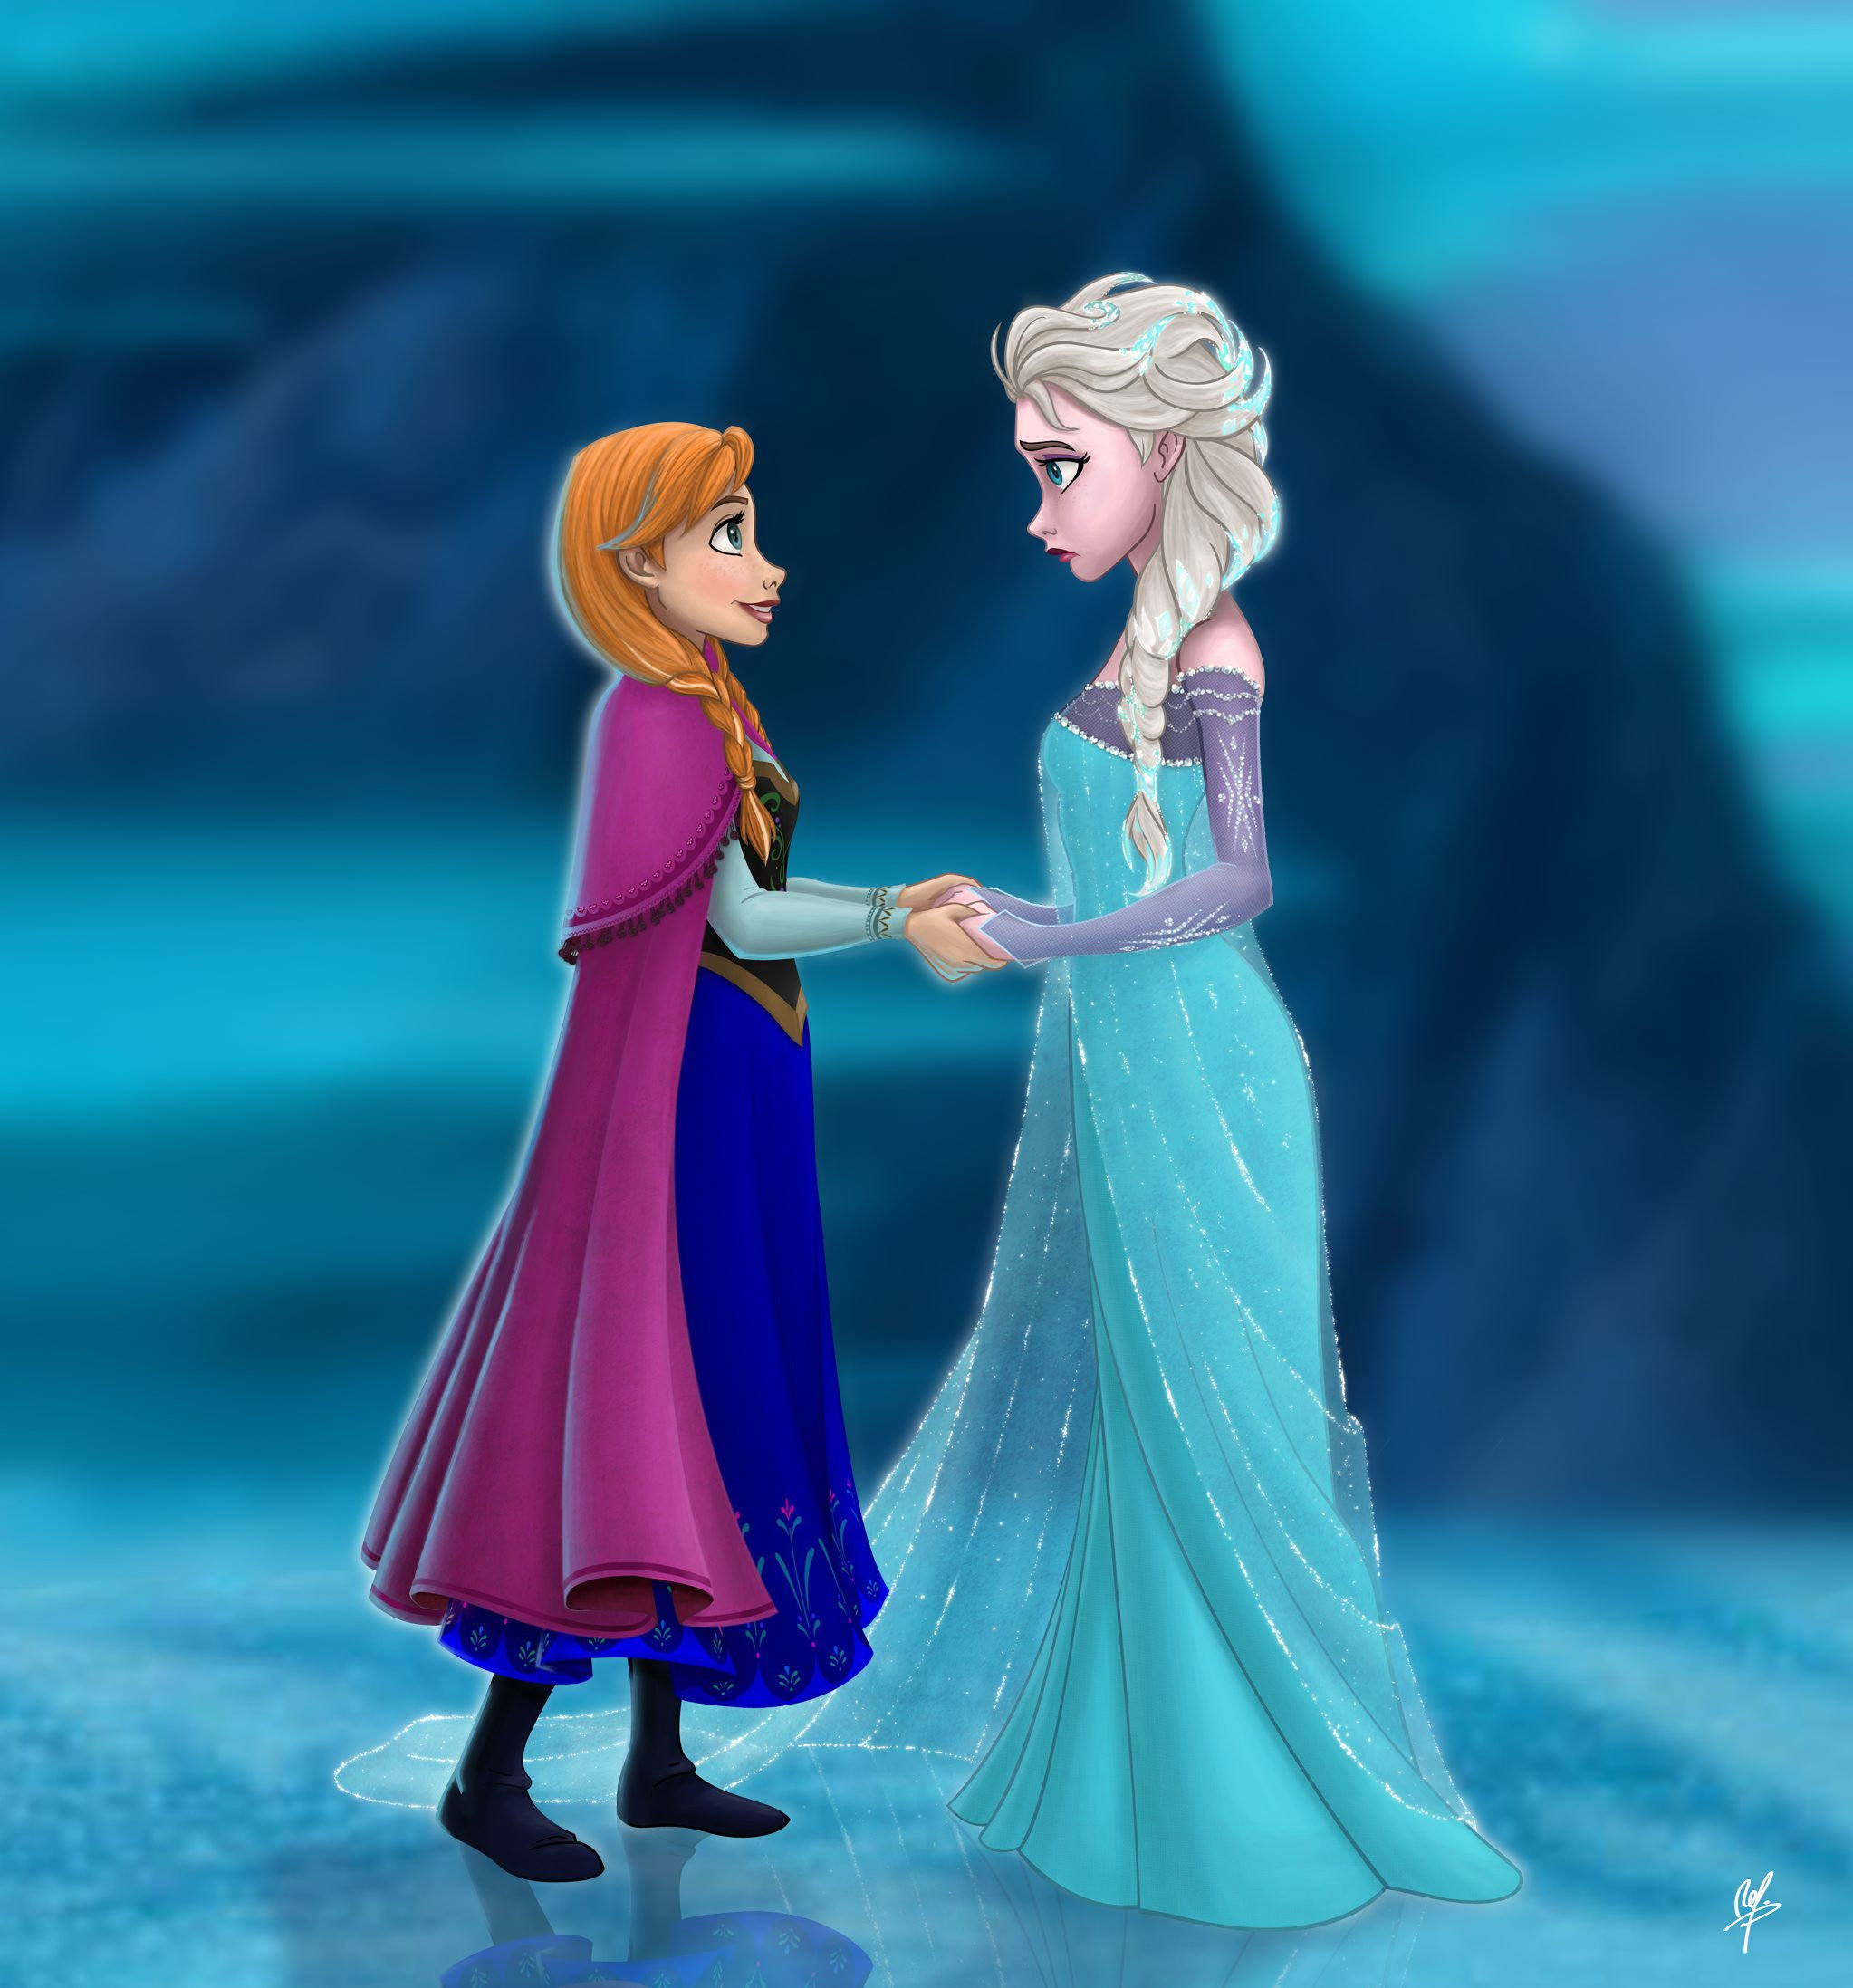 A scene from Disney film, Frozen